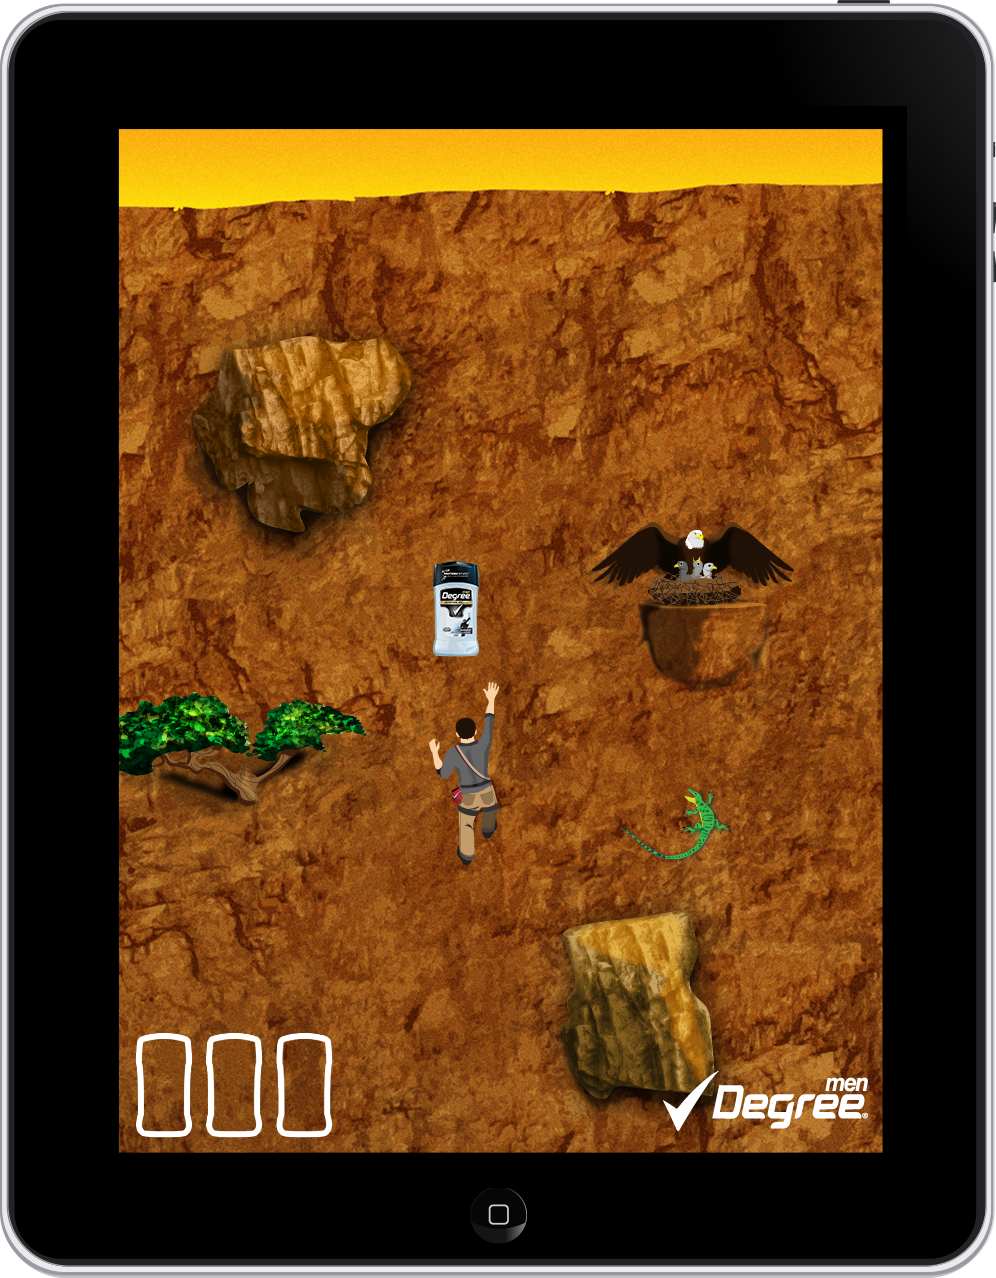 degree_iad_mountain_climbing_game